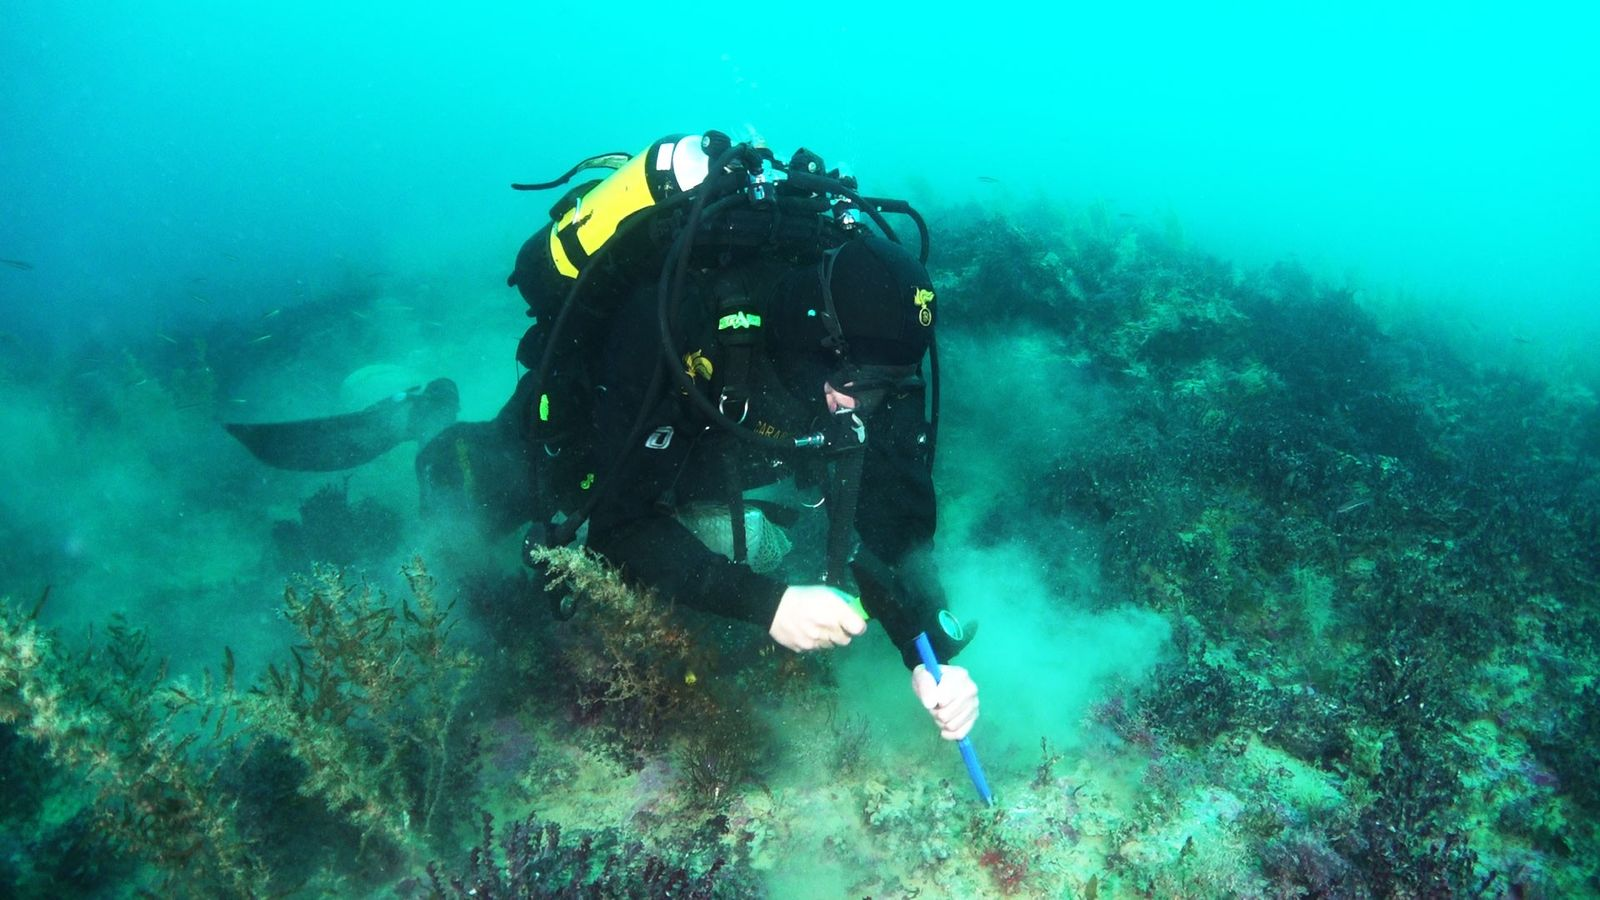 A diver from the Italian army, Carabinieri, collects rocks from one of the newfound volcanoes, Actea, ...